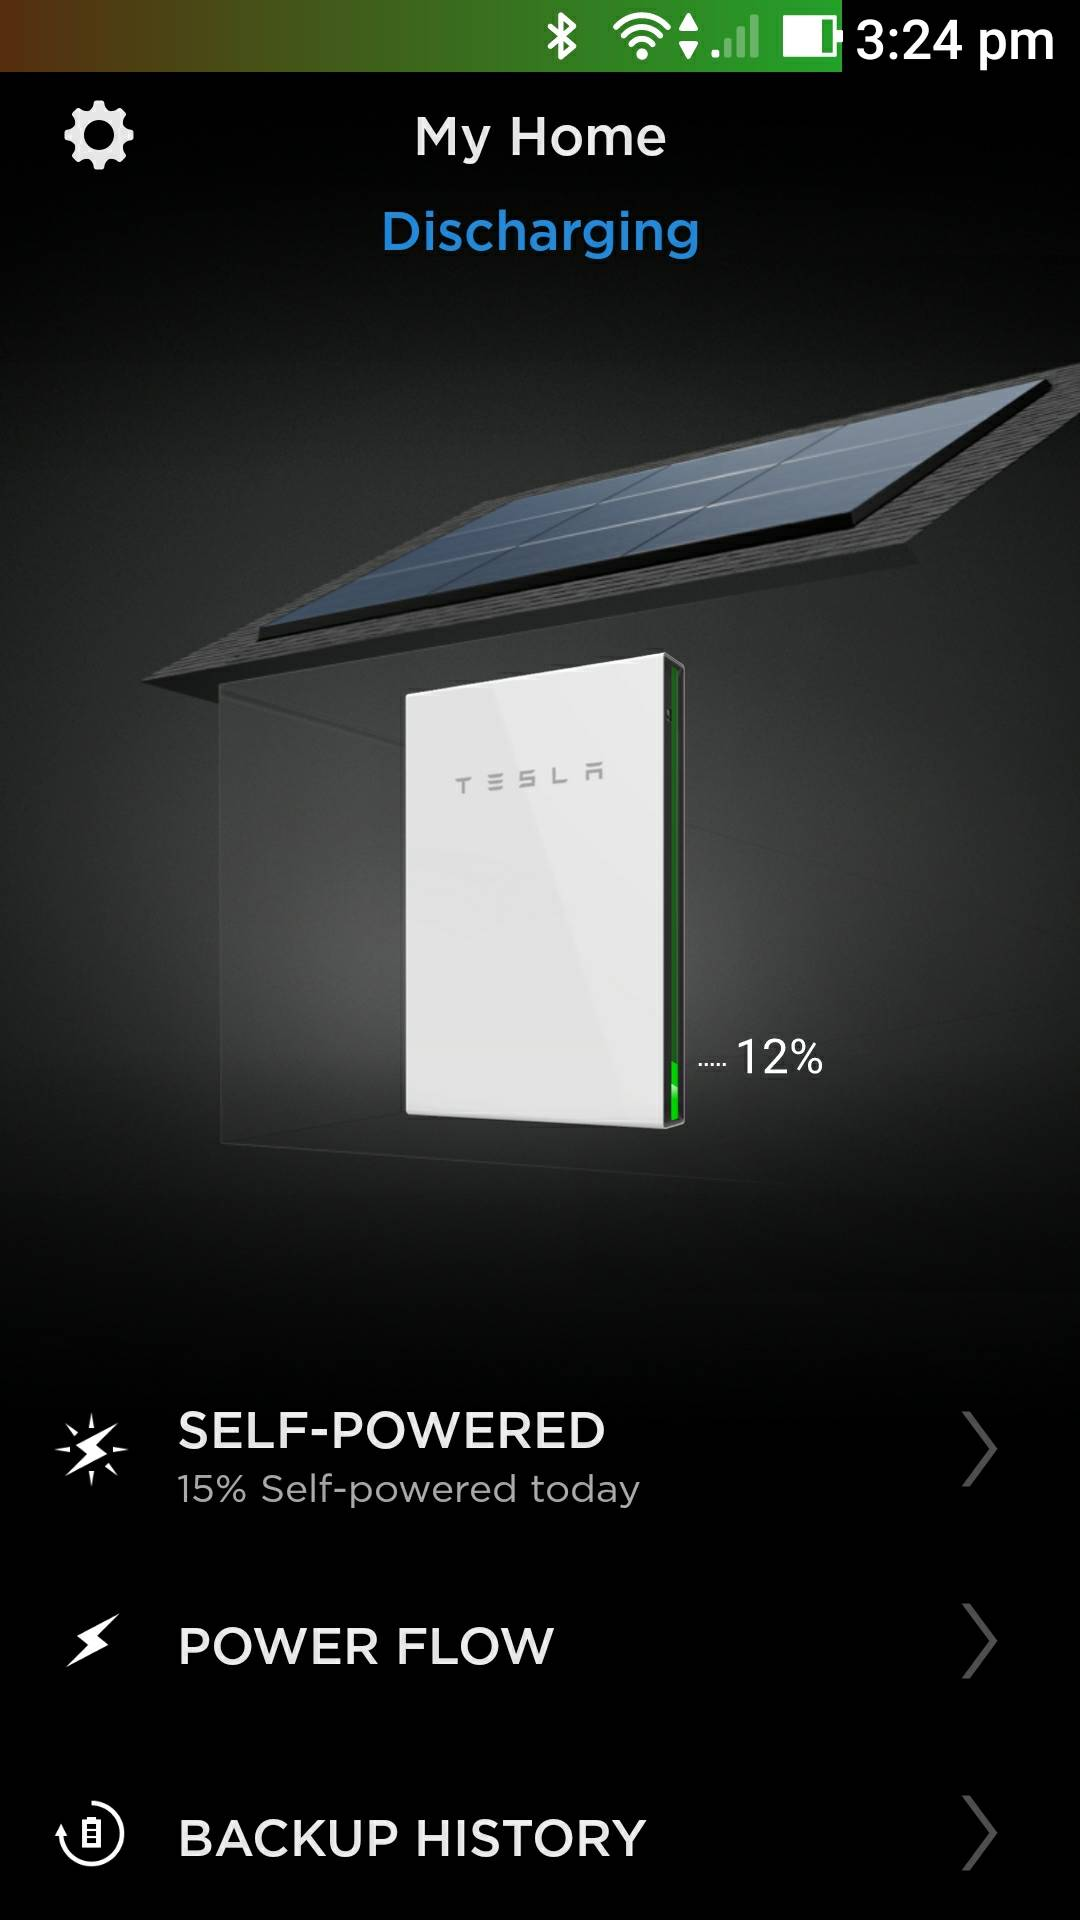 Australian Tesla Powerwall 2 Review Mikesgear If You Run Out Of Room On The Starter Relay Quotbquot Post Install A Power This Is Home Page Get After Signing In It Takes About 5 Seconds To Fetch Current State When Open App And Gives Quick Glance See